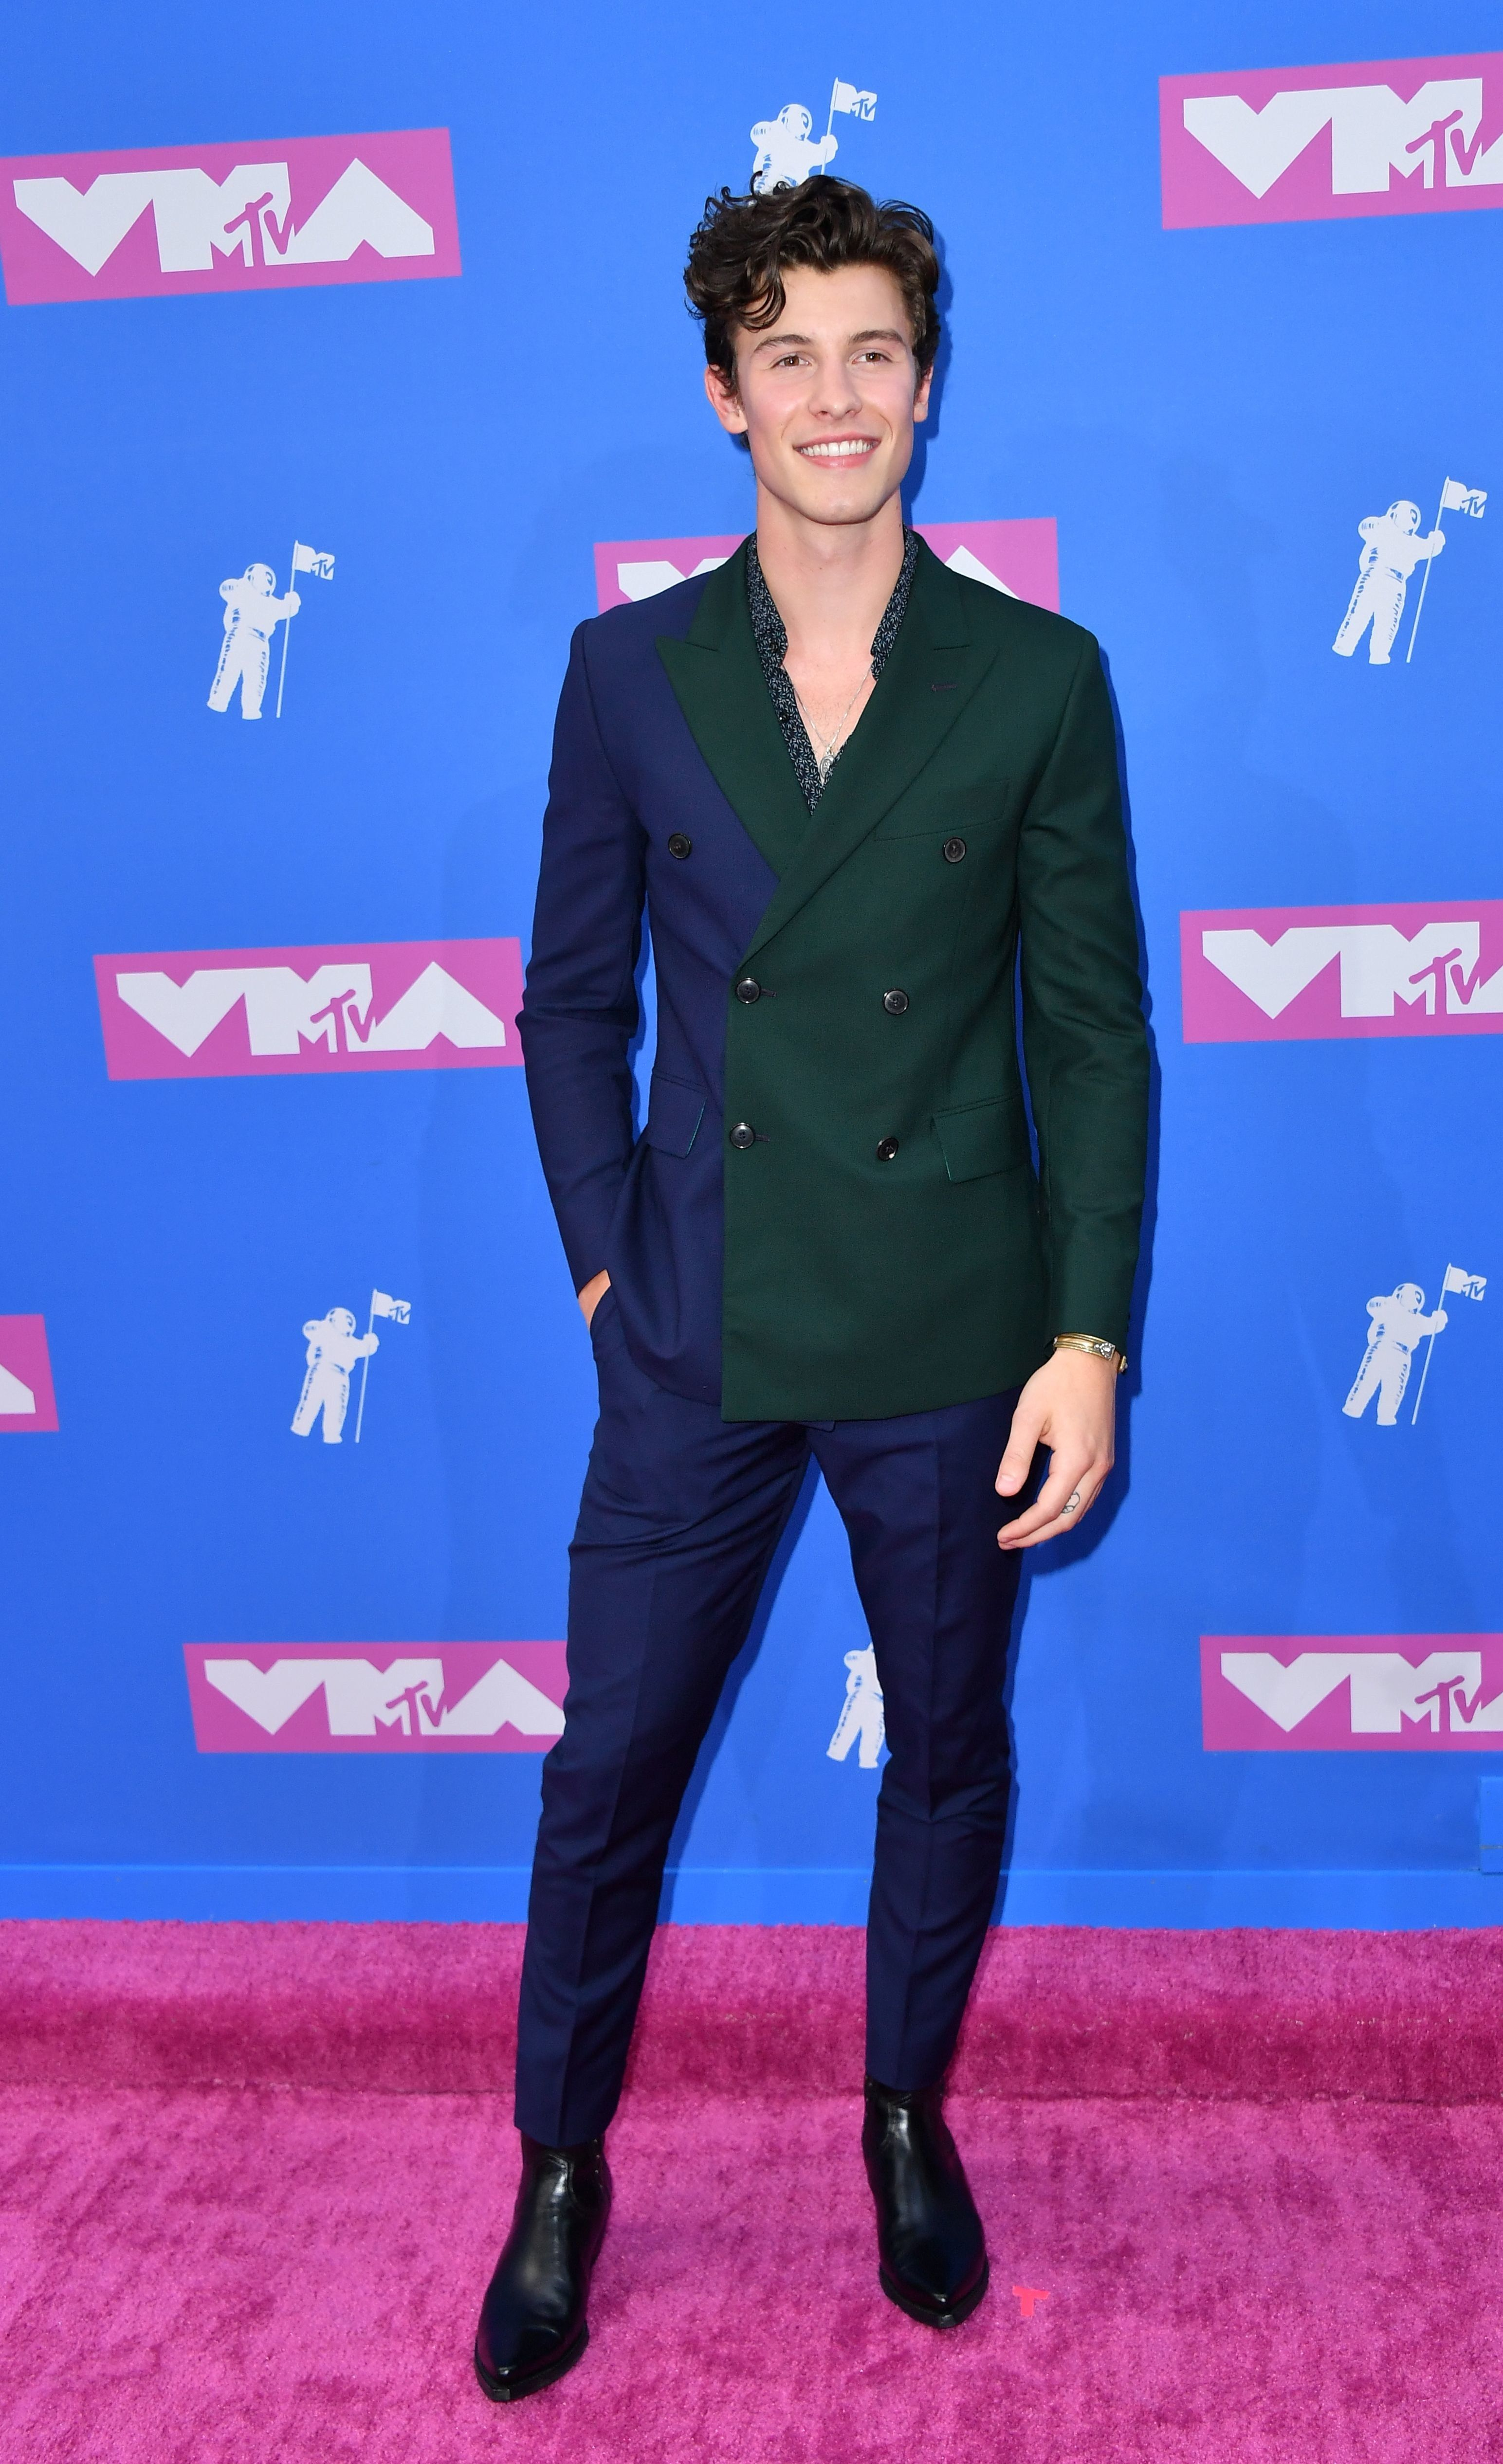 5fe37721129c9 Feeling this suit! Shawn Mendes MTV VMAS 2018 - Split Personality Suit by Paul  Smith